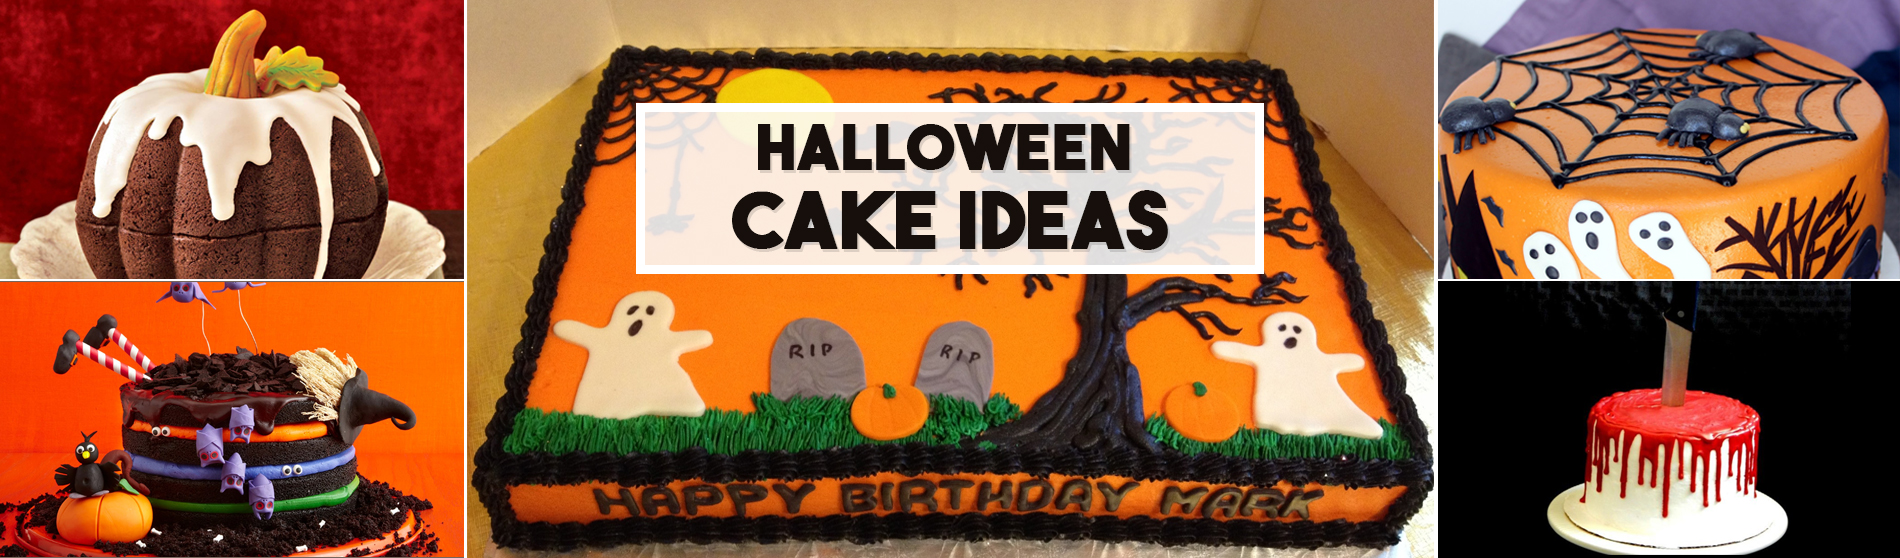 Halloween-Cake-Ideas